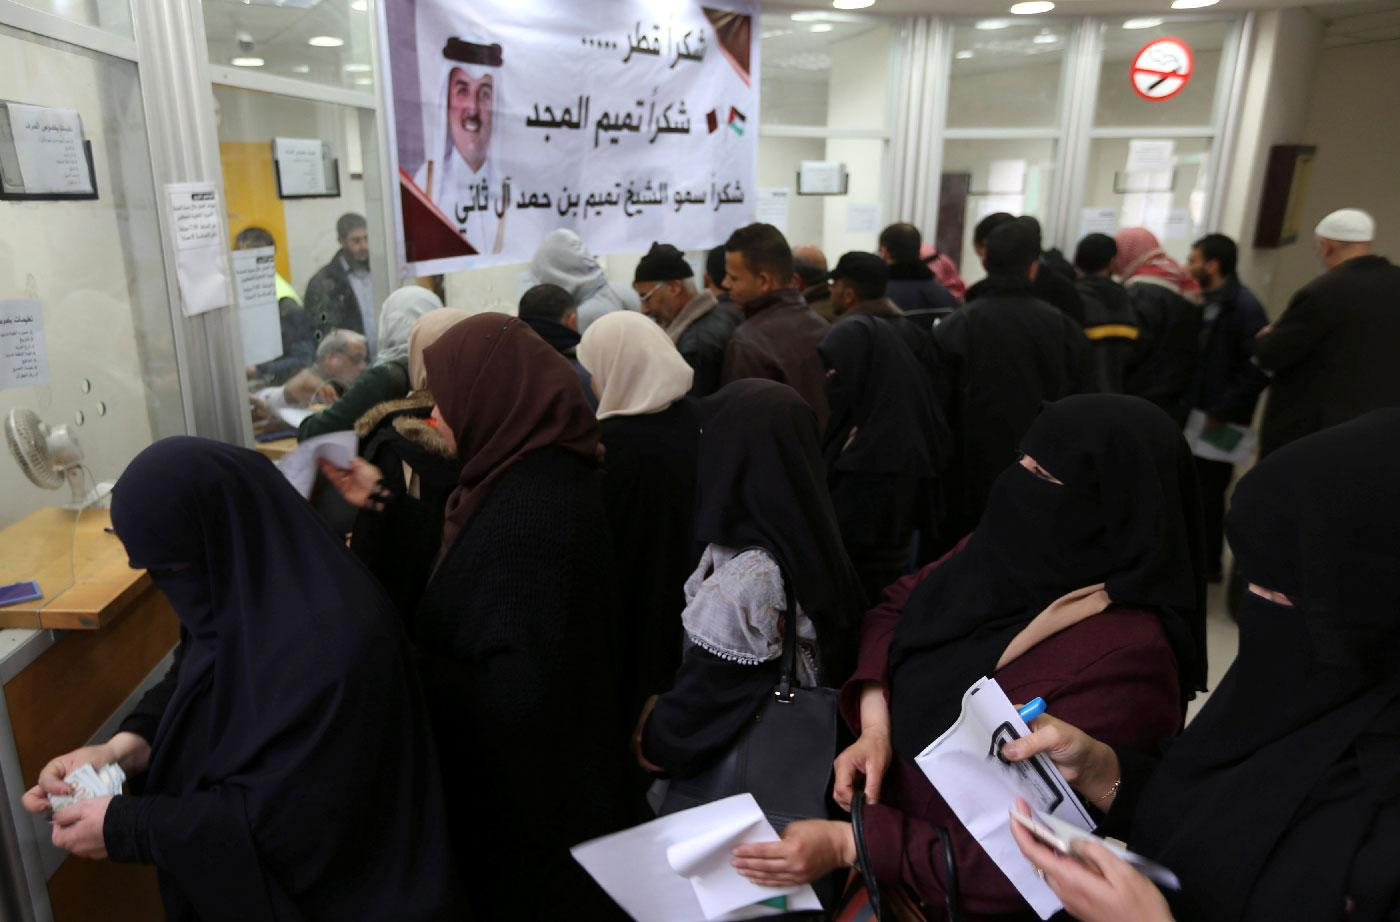 Palestinian Hamas-hired civil servants wait to receive their salaries paid by Qatar as a banner showing a picture of Qatar's Sheikh Tamim bin Hamad Al Thani is seen, in Khan Younis in the southern Gaza Strip December 7, 2018.